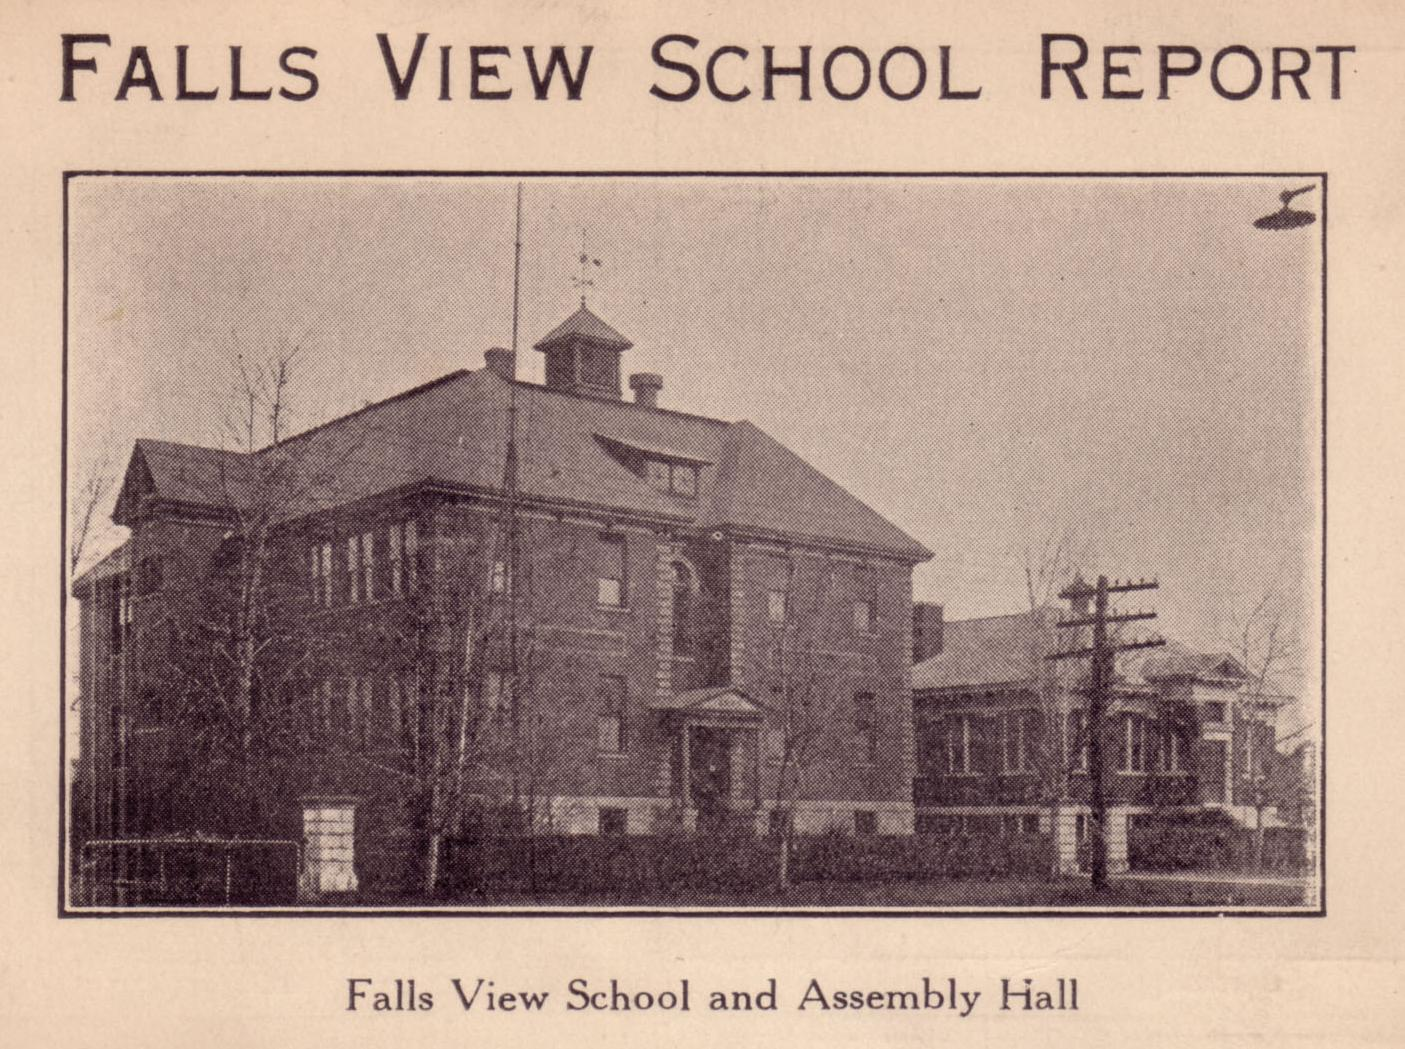 Falls View School building. Black and white image showing the building which stands on Dunn Street. Imposing structure with a hip-roof, made of brick with quoining along the corners. The appex of the roof has a bell. Post and lintel with piedement over front door and an iron fence with stone posts mark the schoolyard. The building at right is the assembly hall to the school house.